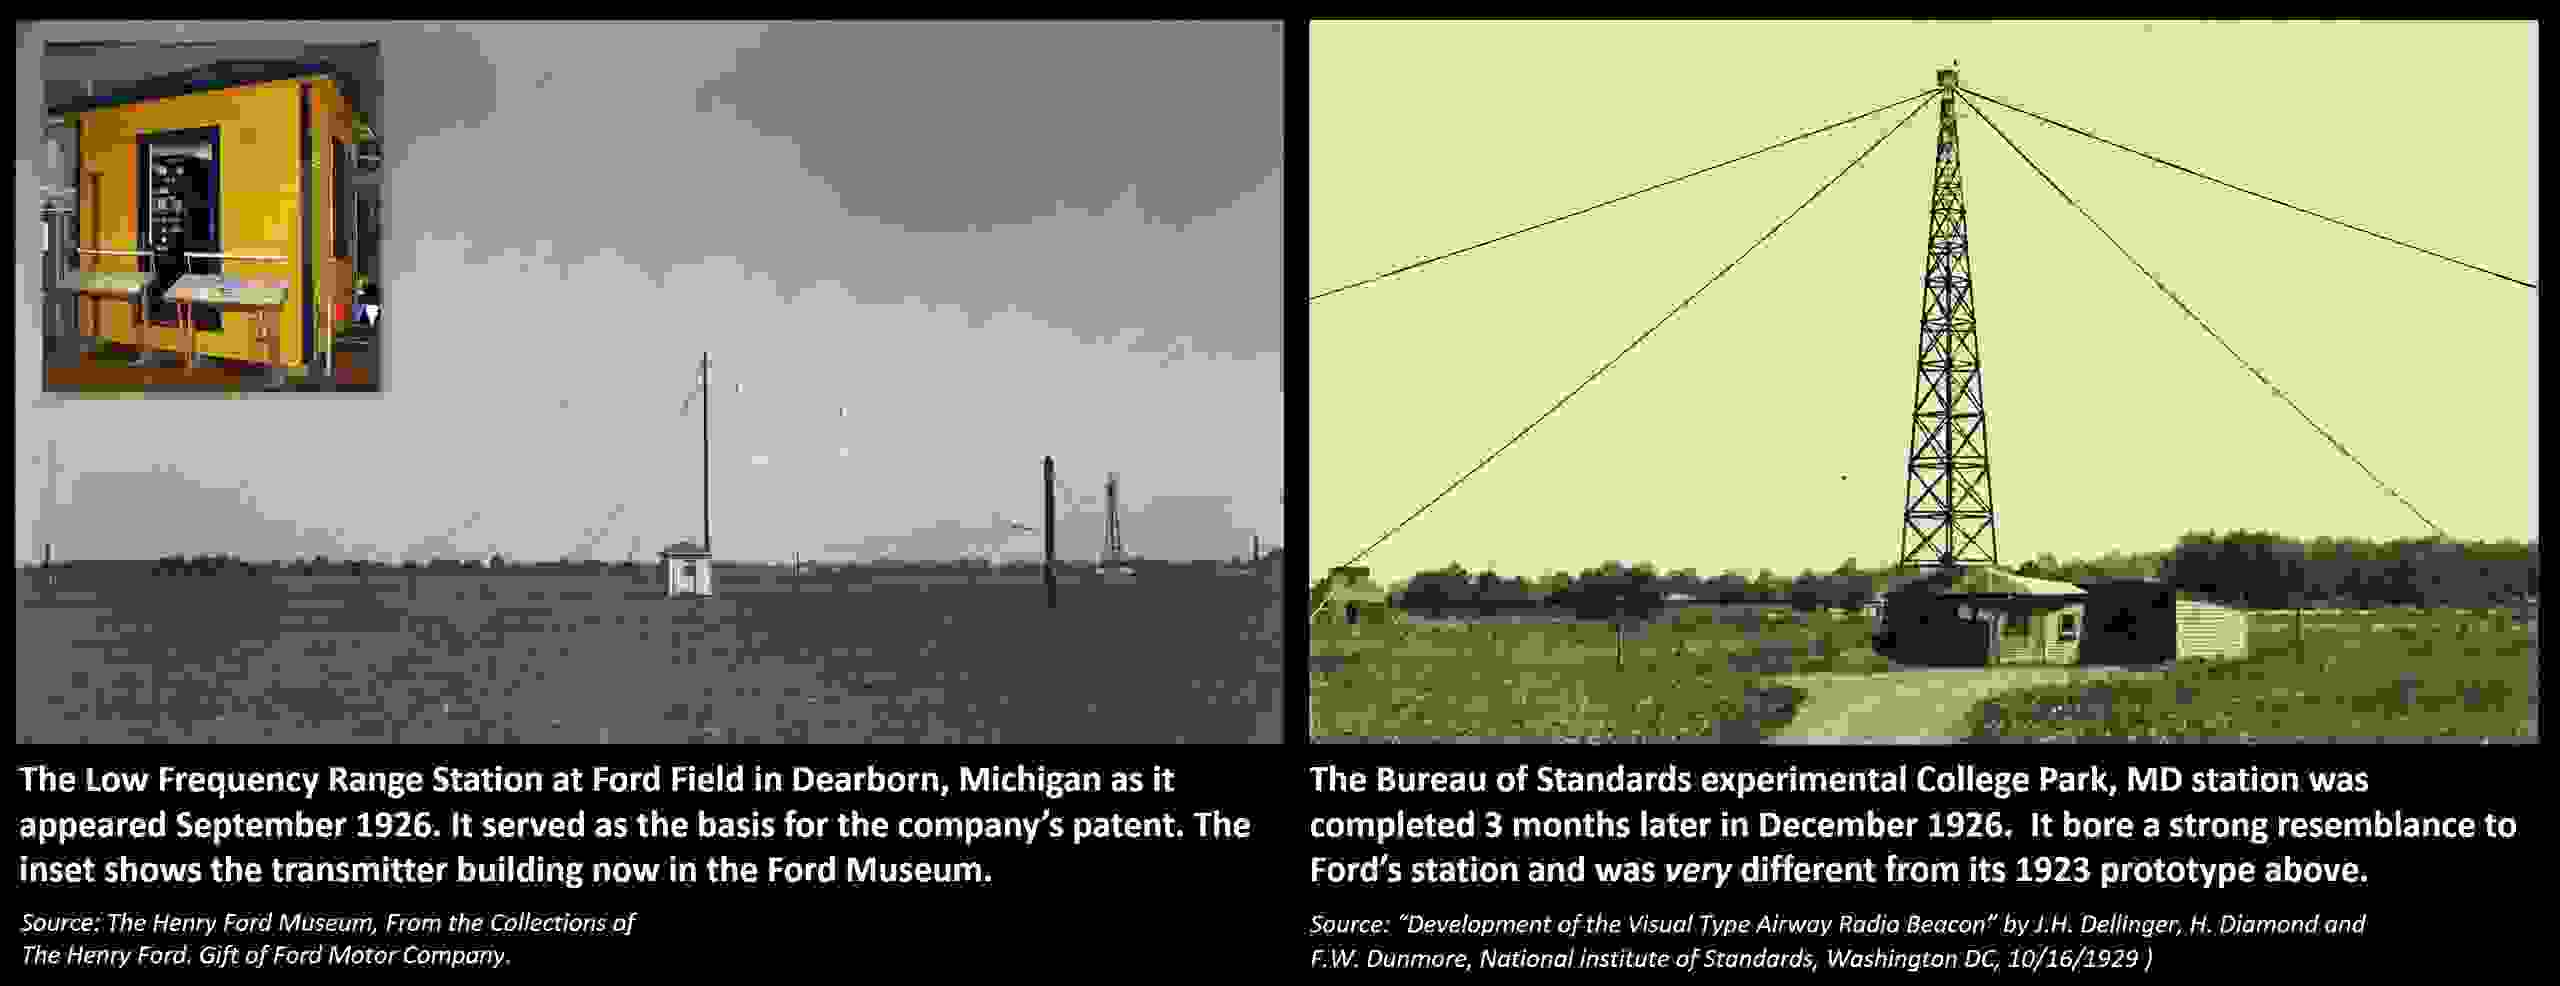 Low Frequency Radio Range, Four Course Radio Range: Ford Dearborn and College Park Radio Beacons